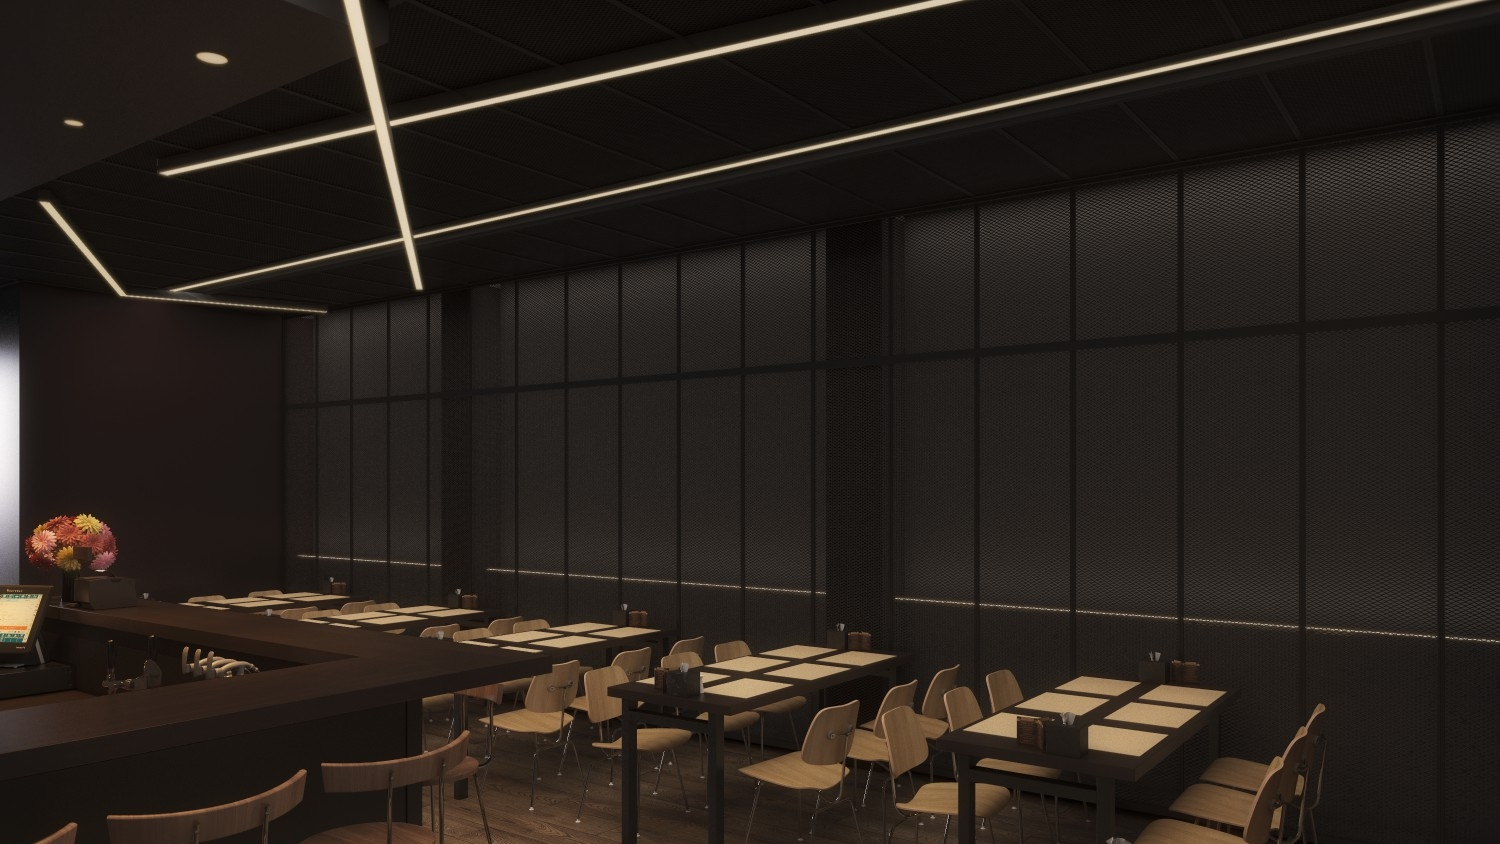 lighting-spaces-design-projects-mr-kwok-03.jpg